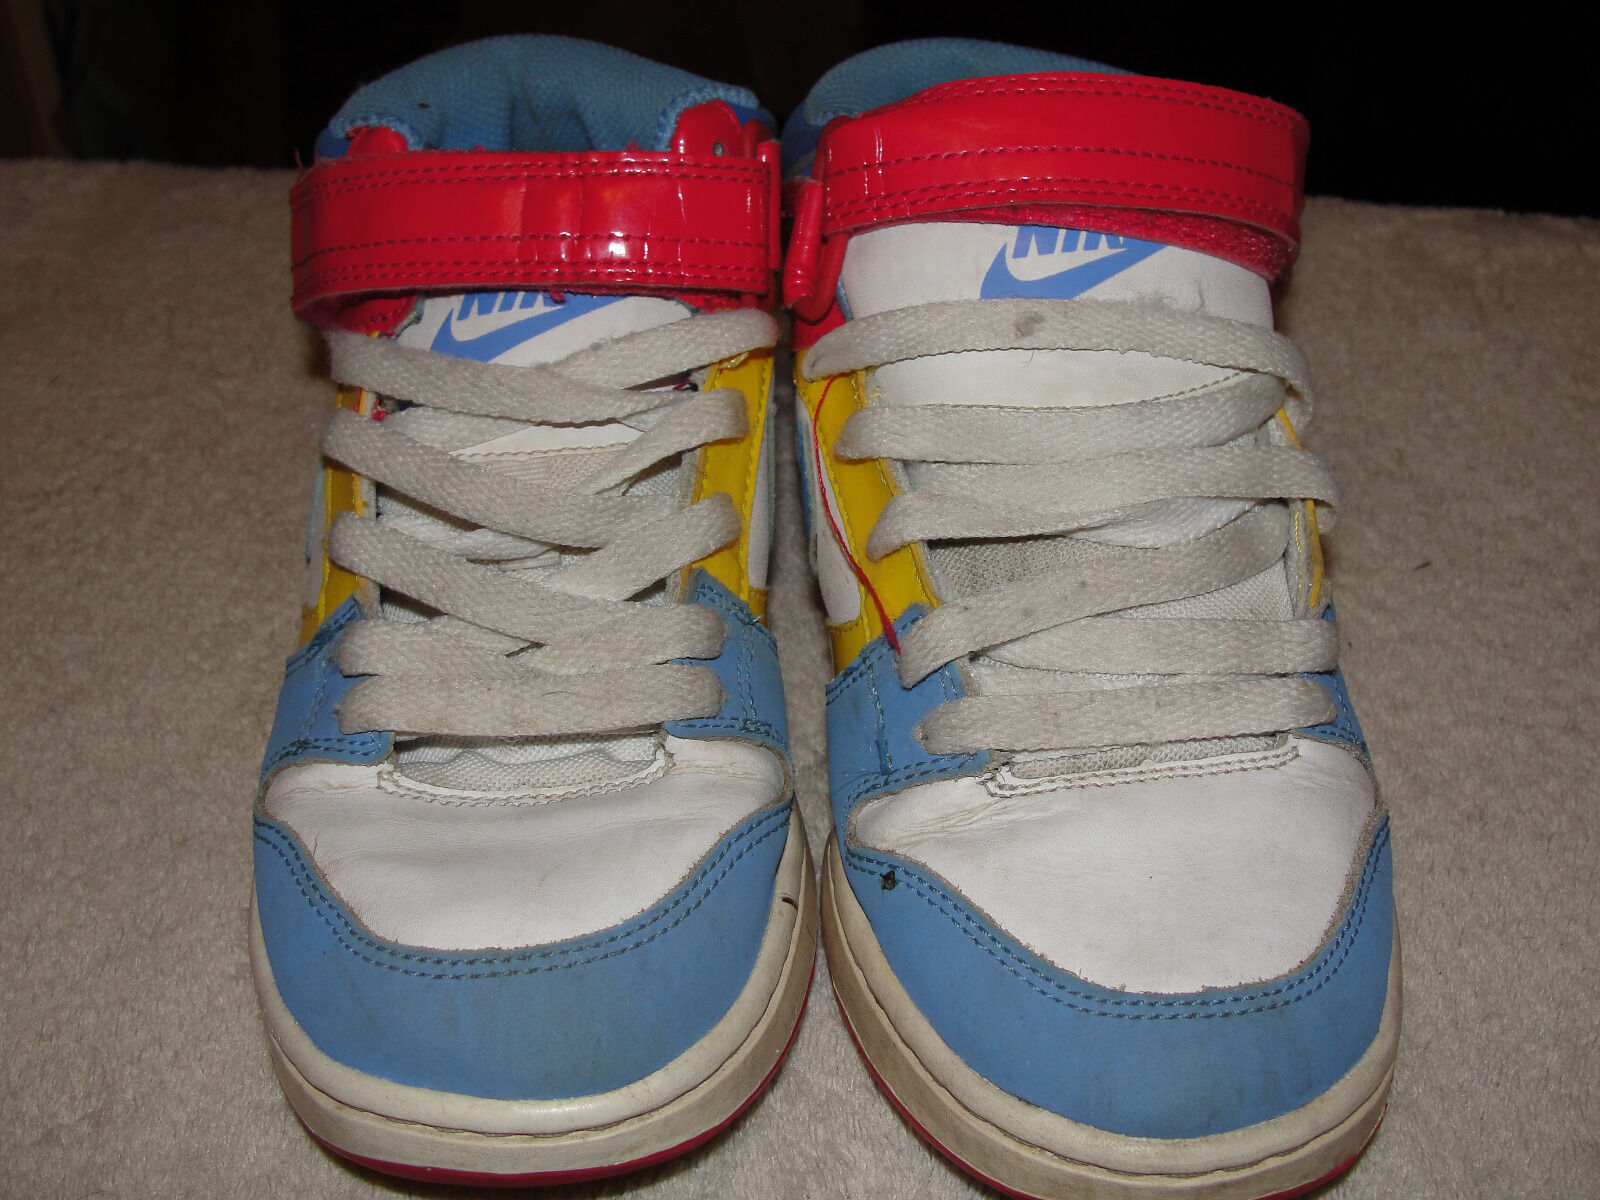 VERY NICE NIKE SIZE SHOES - SIZE NIKE 0c163b